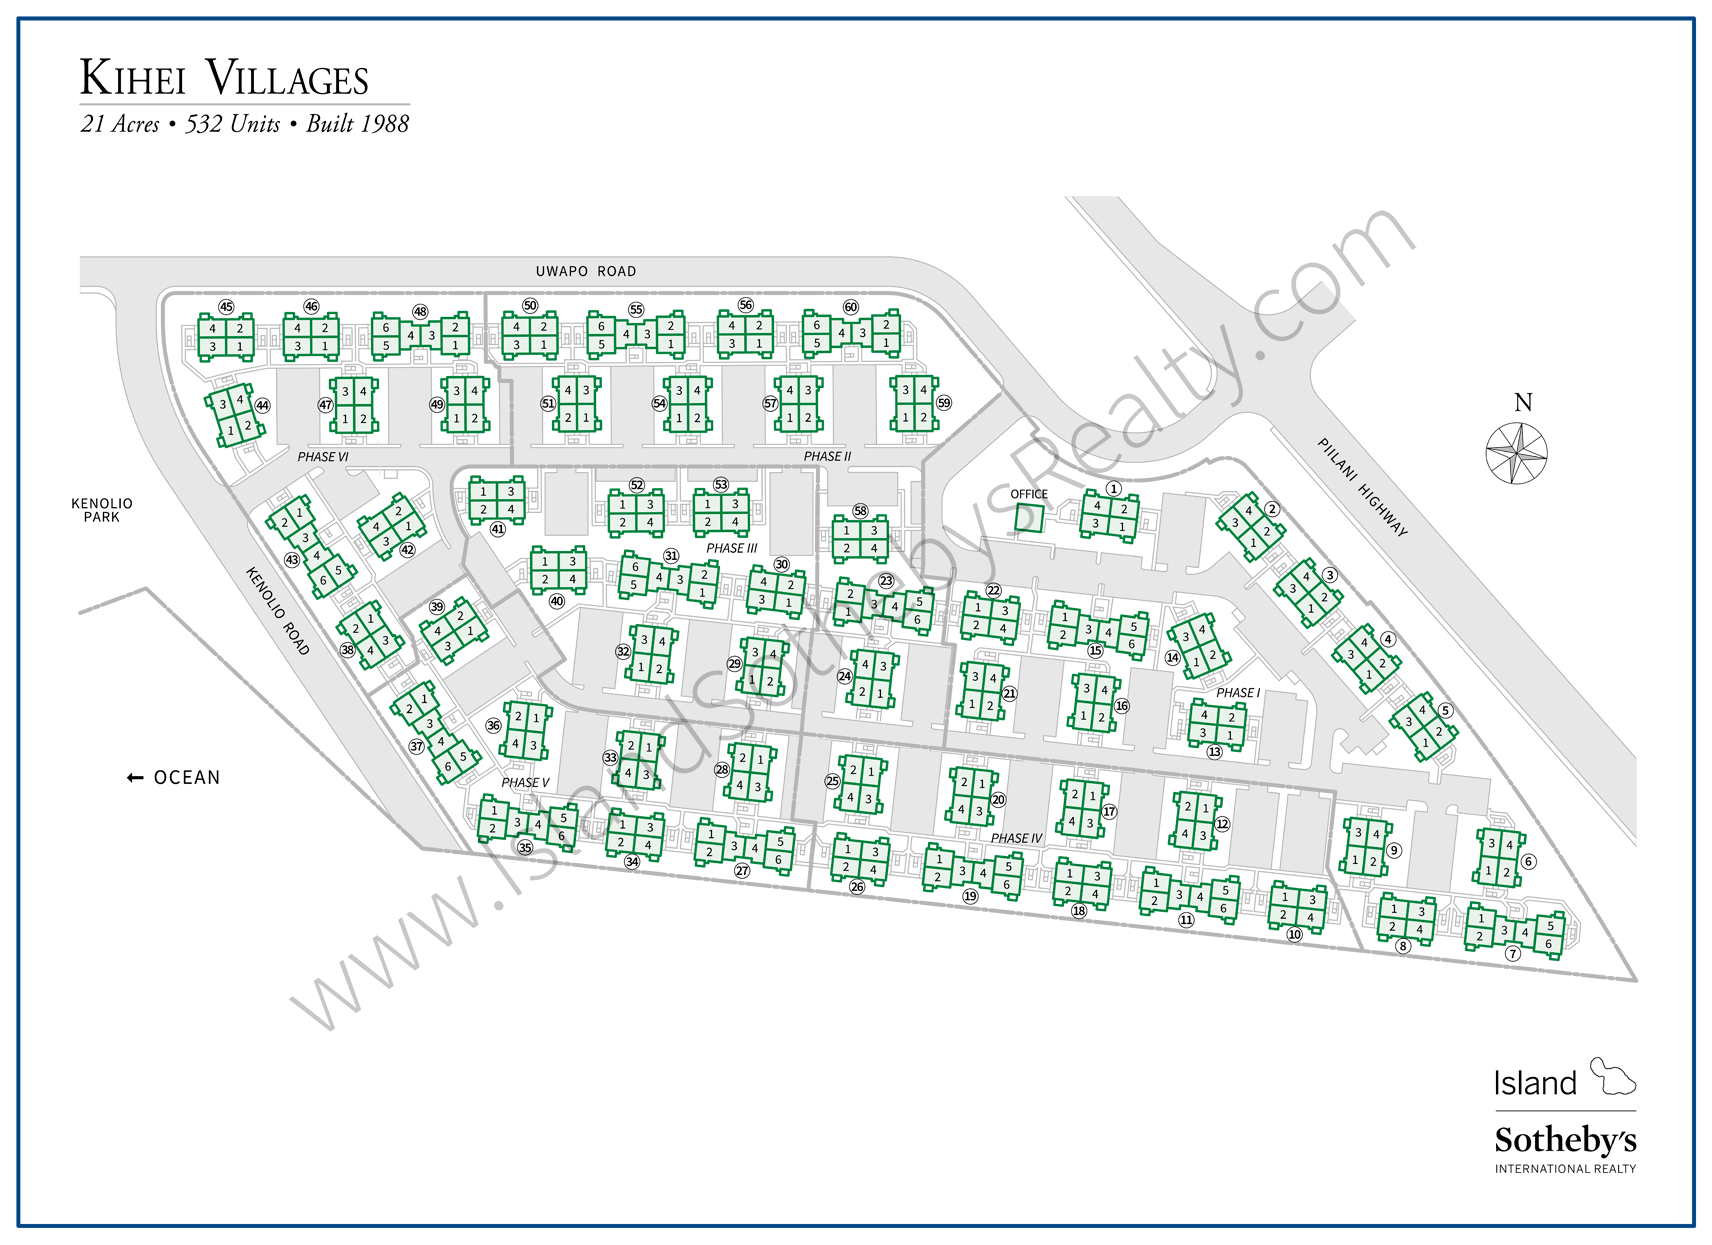 Map of Kihei Villages Condominium Maui